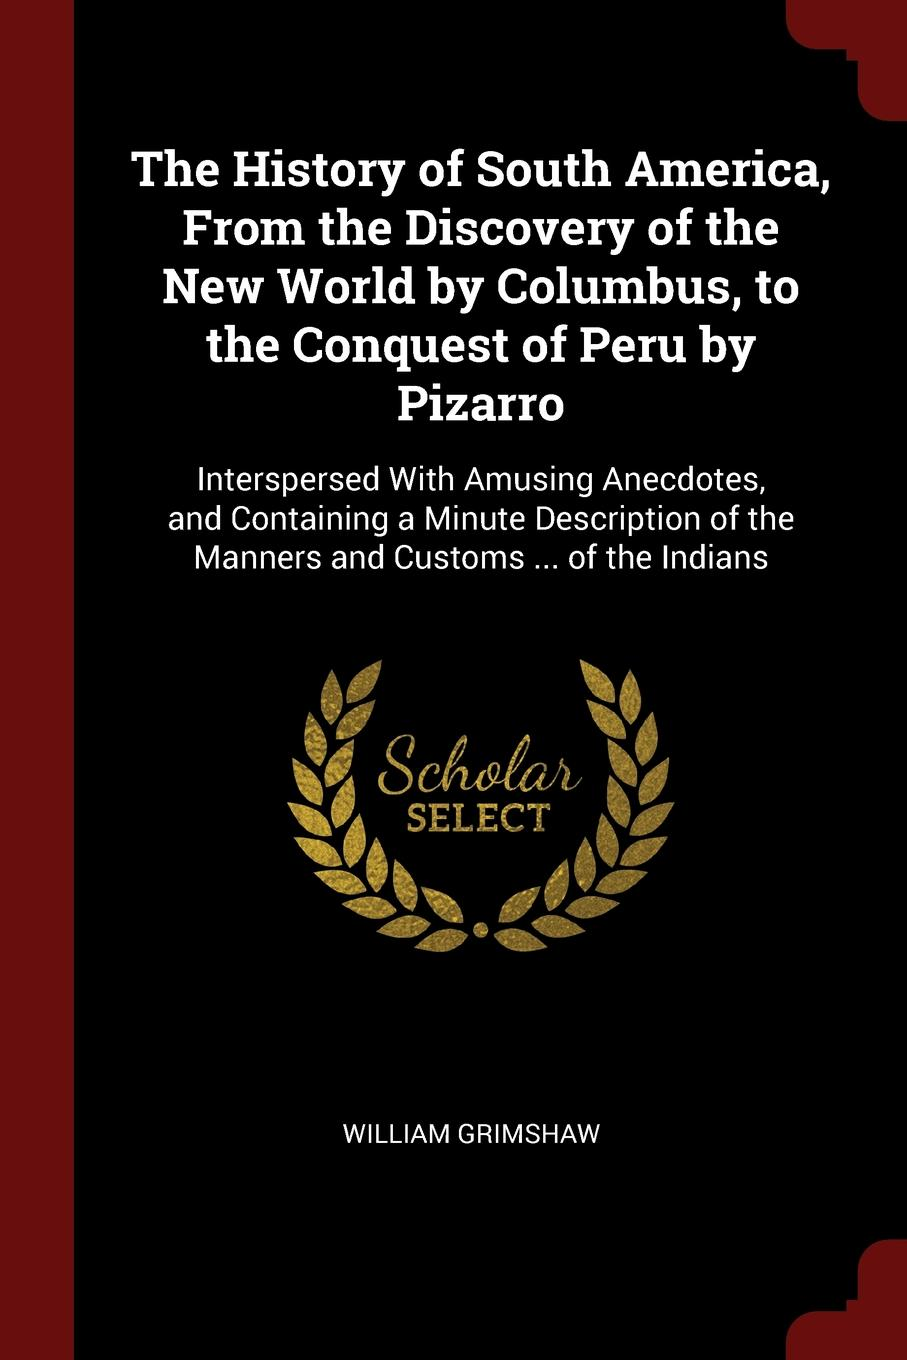 William Grimshaw The History of South America, From the Discovery of the New World by Columbus, to the Conquest of Peru by Pizarro. Interspersed With Amusing Anecdotes, and Containing a Minute Description of the Manners and Customs ... of the Indians